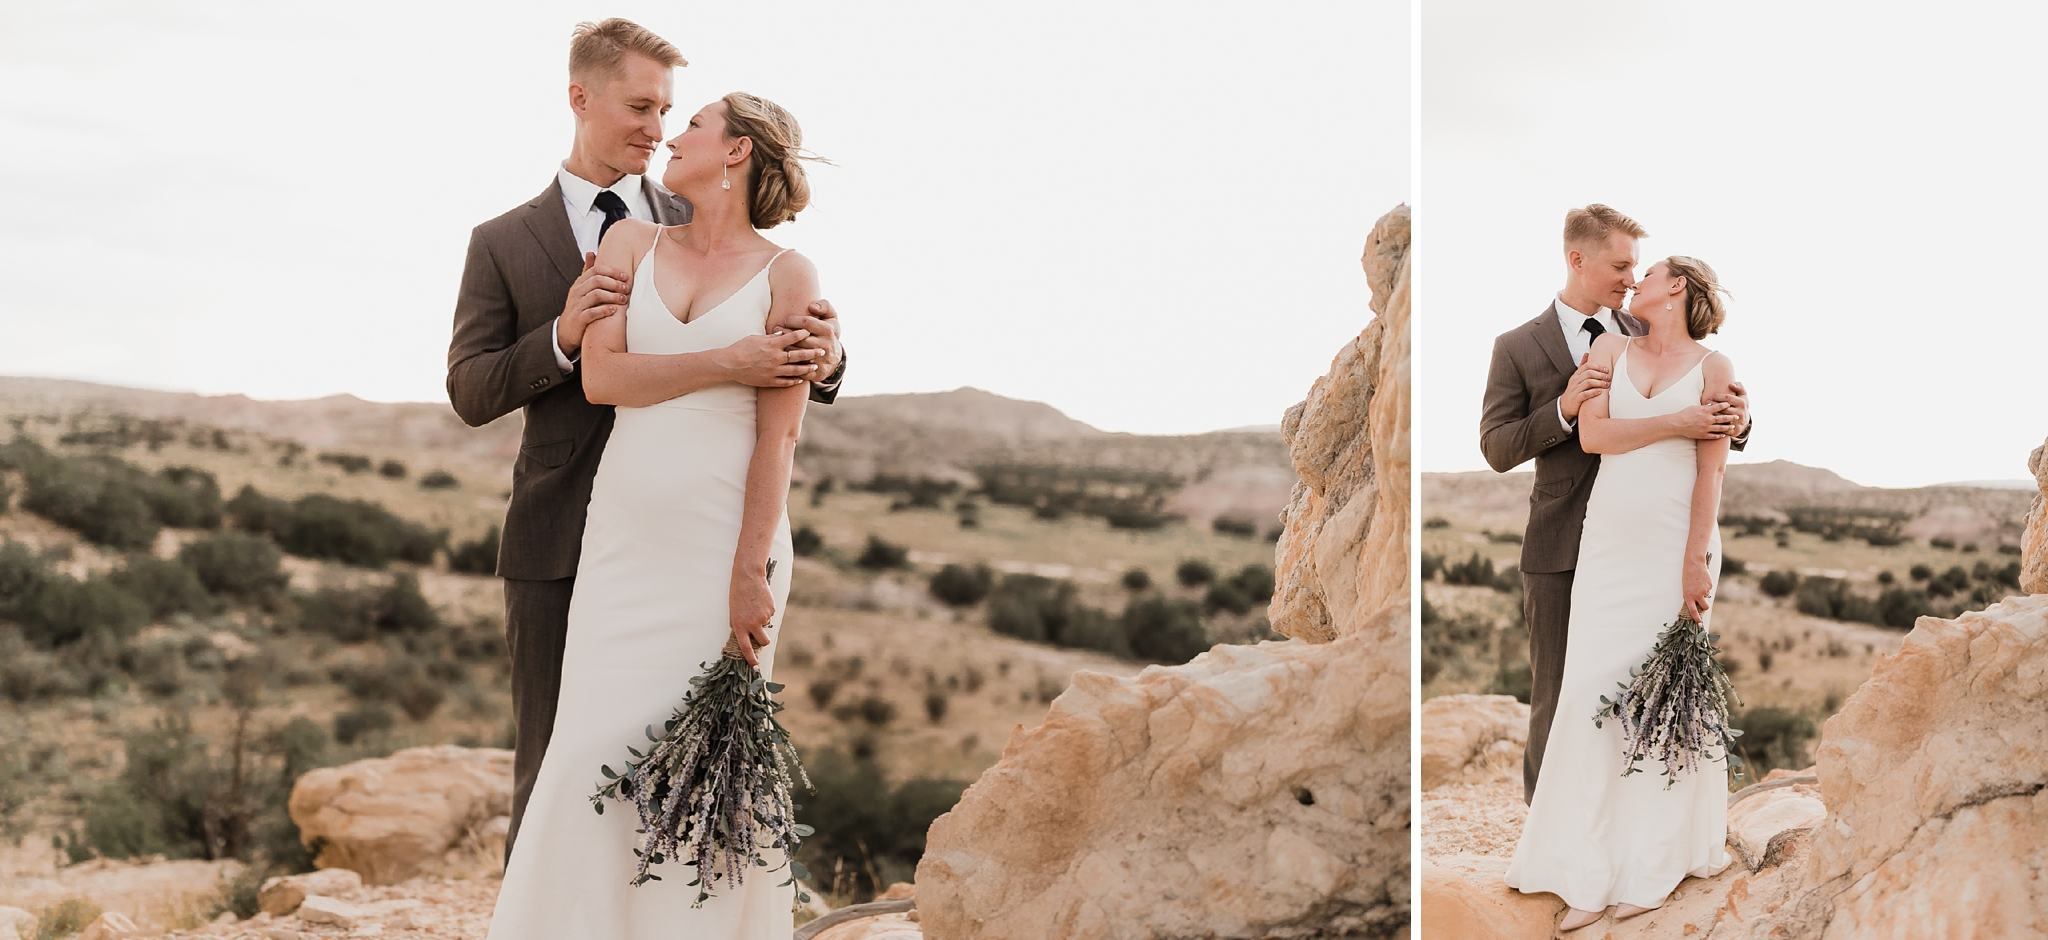 Alicia+lucia+photography+-+albuquerque+wedding+photographer+-+santa+fe+wedding+photography+-+new+mexico+wedding+photographer+-+new+mexico+wedding+-+new+mexico+elopement+-+elopment+-+mountain+elopement_0029.jpg